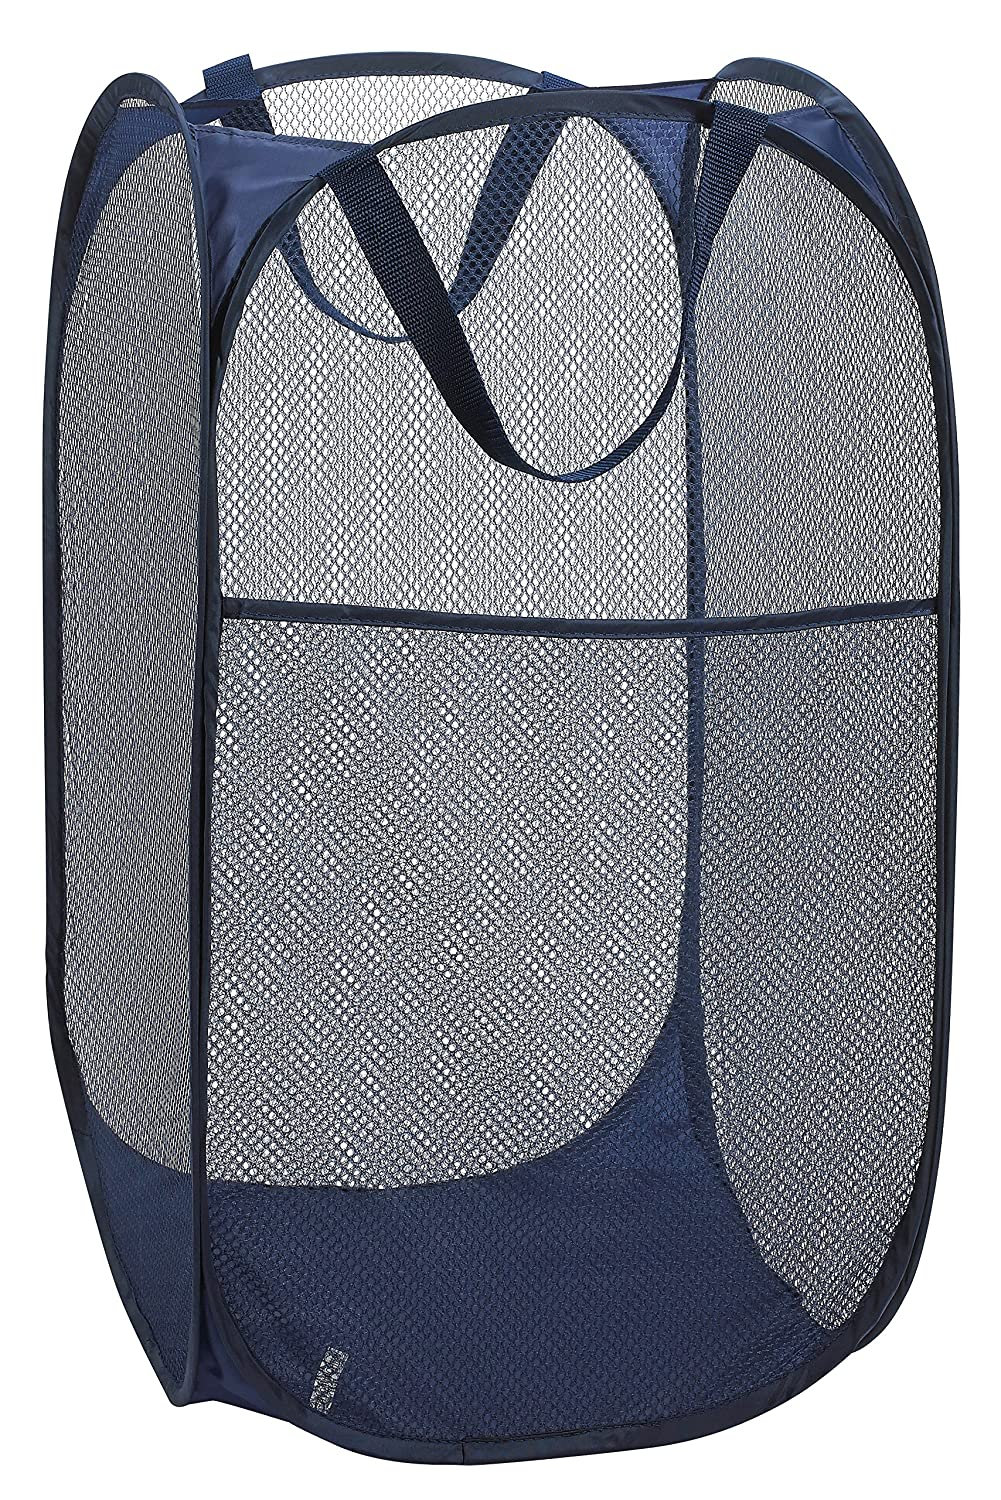 Mesh Popup Laundry Hamper - Portable, Durable Handles, Collapsible for Storage and Easy to Open. Folding Pop-Up Clothes Hampers Are Great for the Kids Room, College Dorm or Travel. (Blue)